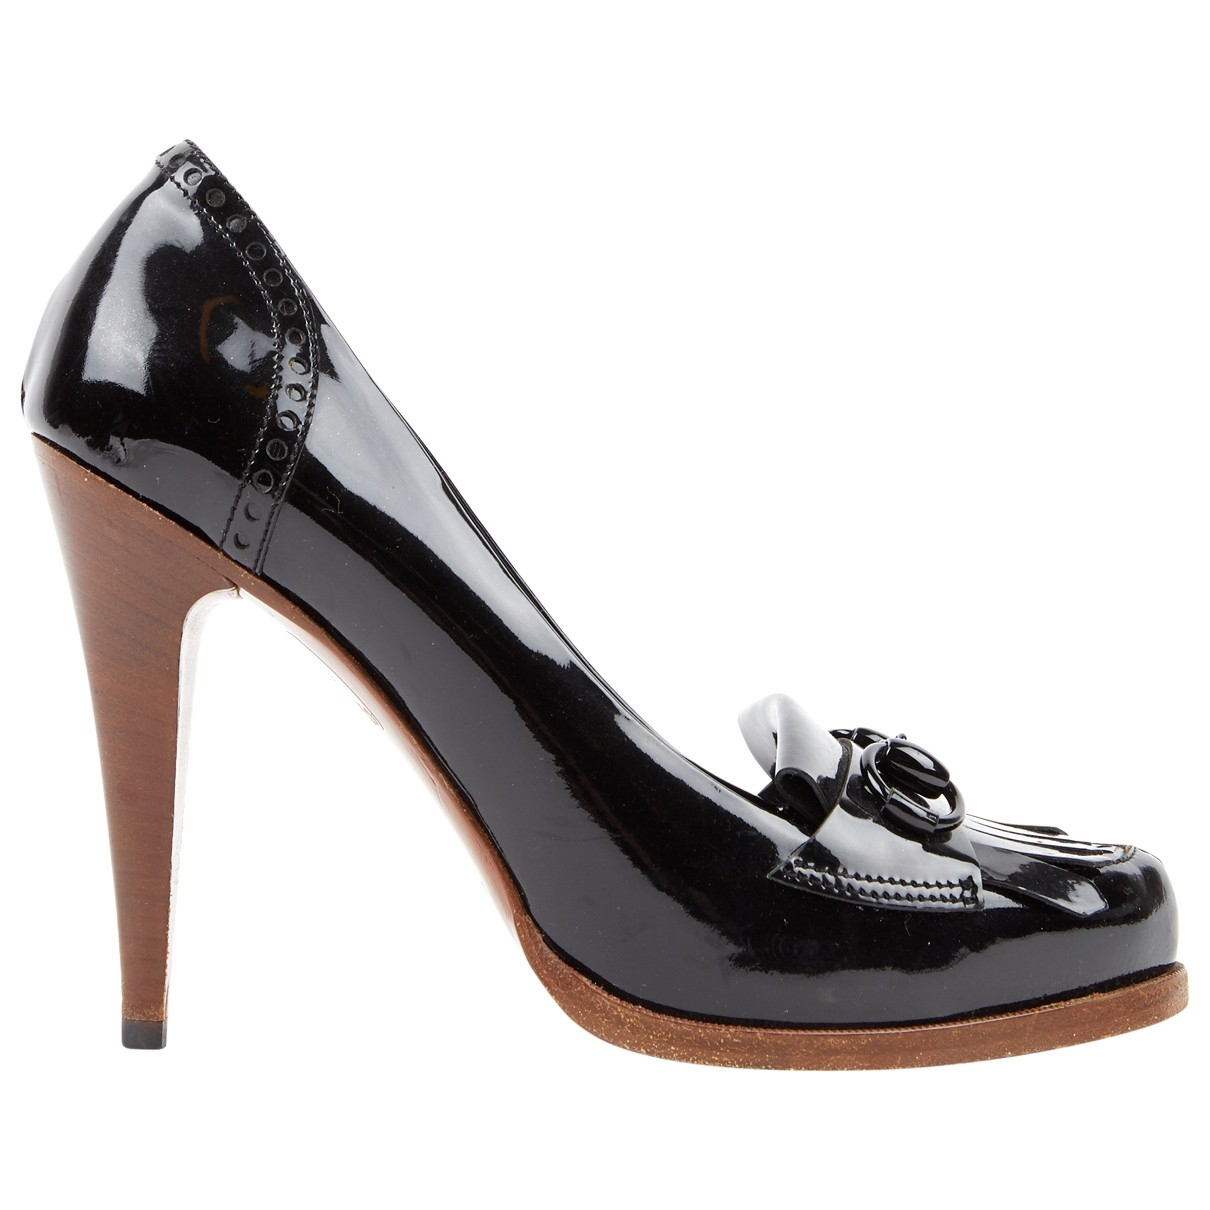 Gucci \N Black Patent leather Heels for Women 37 EU